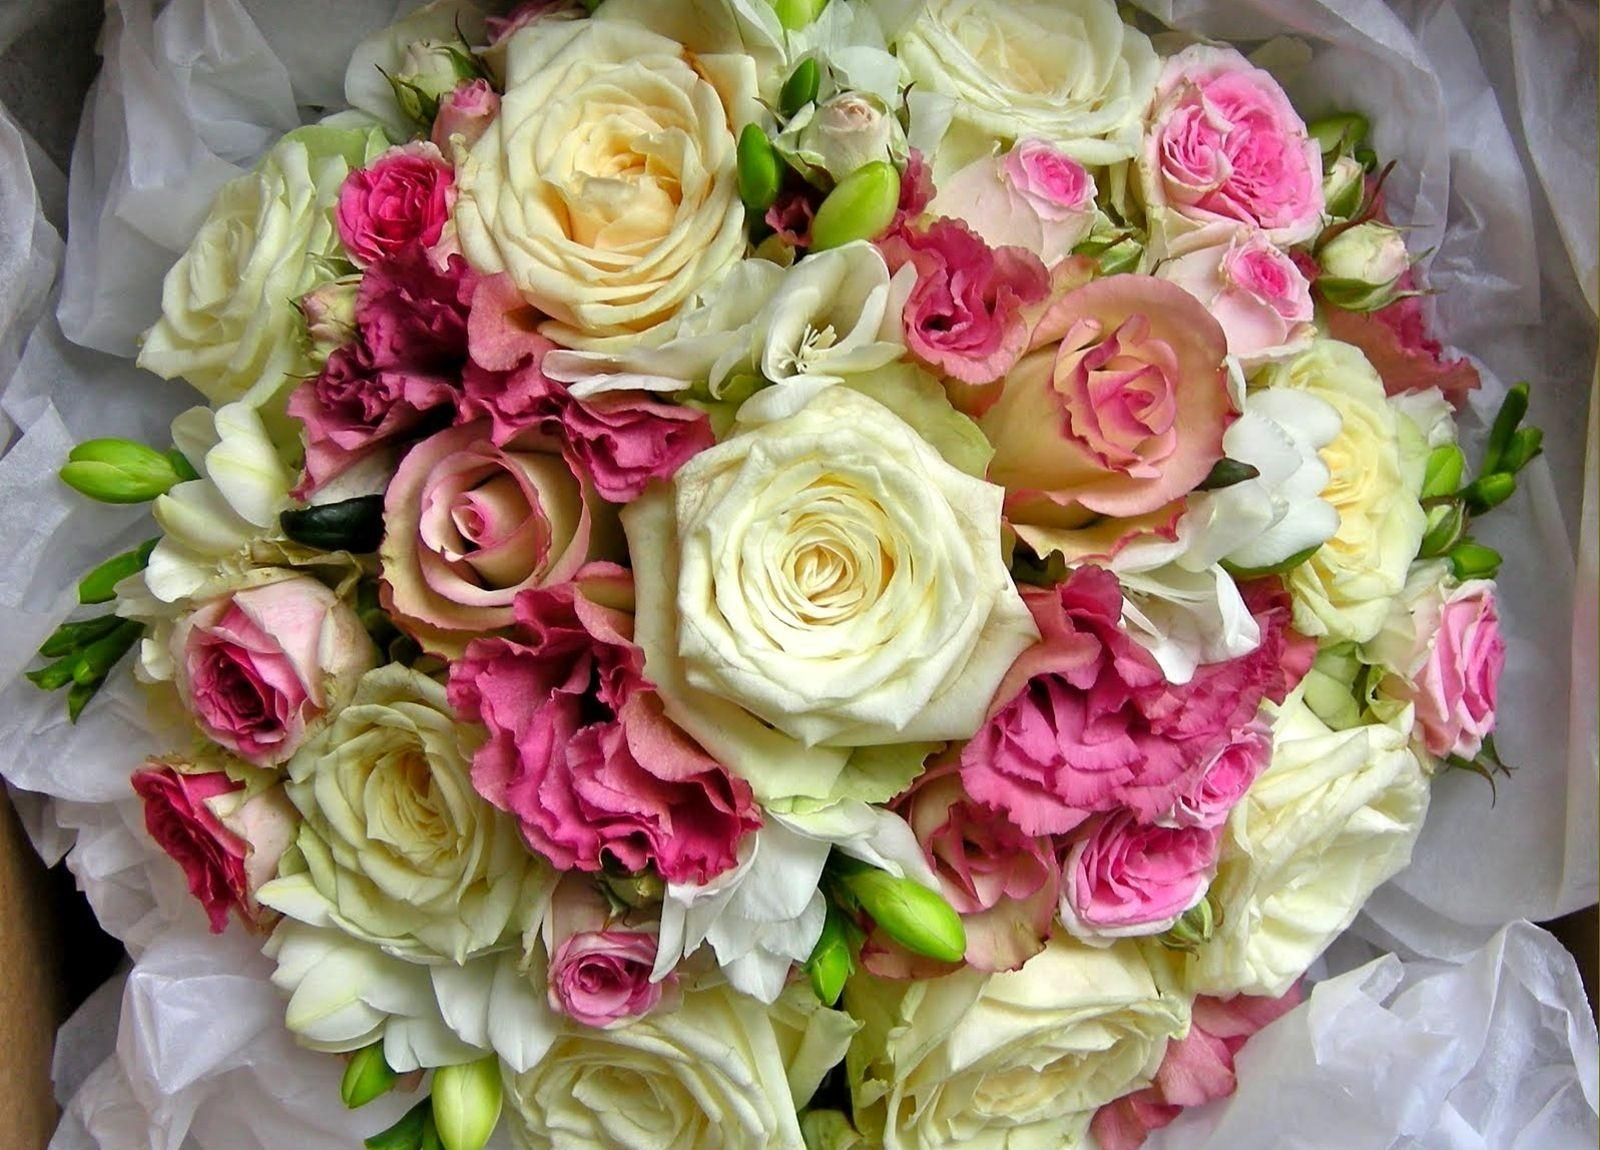 105276 download wallpaper Flowers, Roses, Registration, Typography, Bouquet, Handsomely, It's Beautiful screensavers and pictures for free